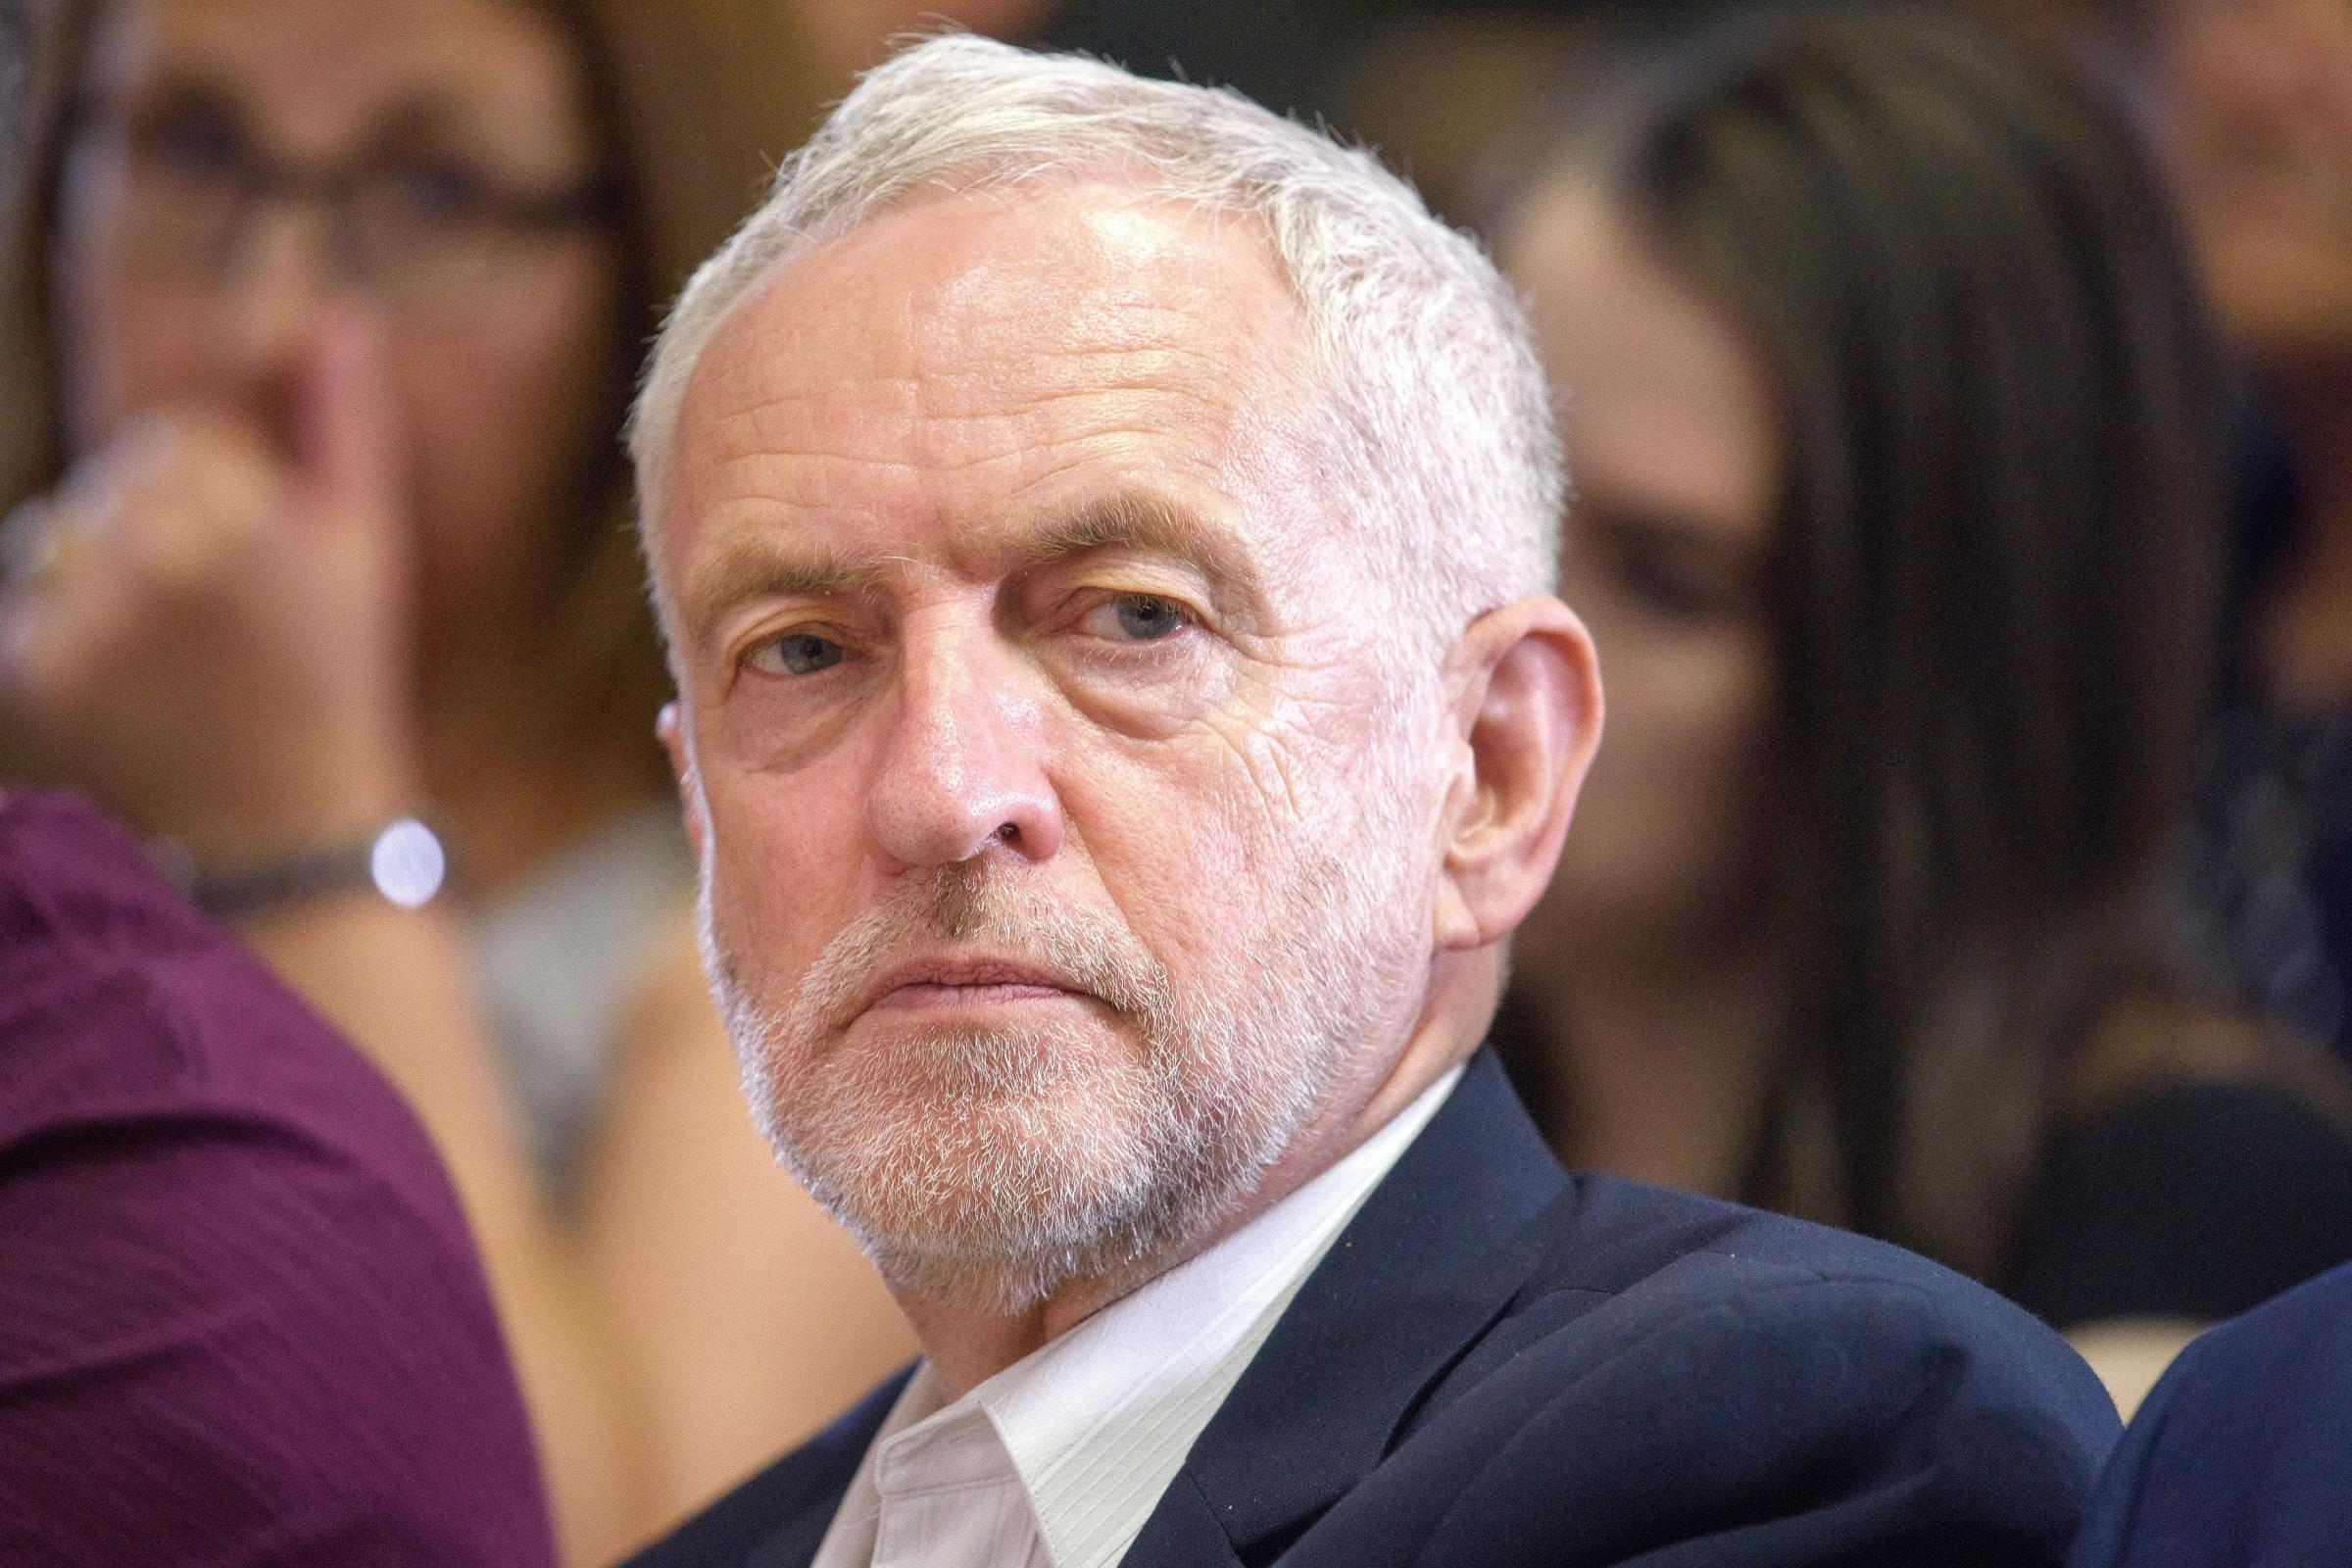 Corbyn concerned about Kroenke's takeover of Arsenal